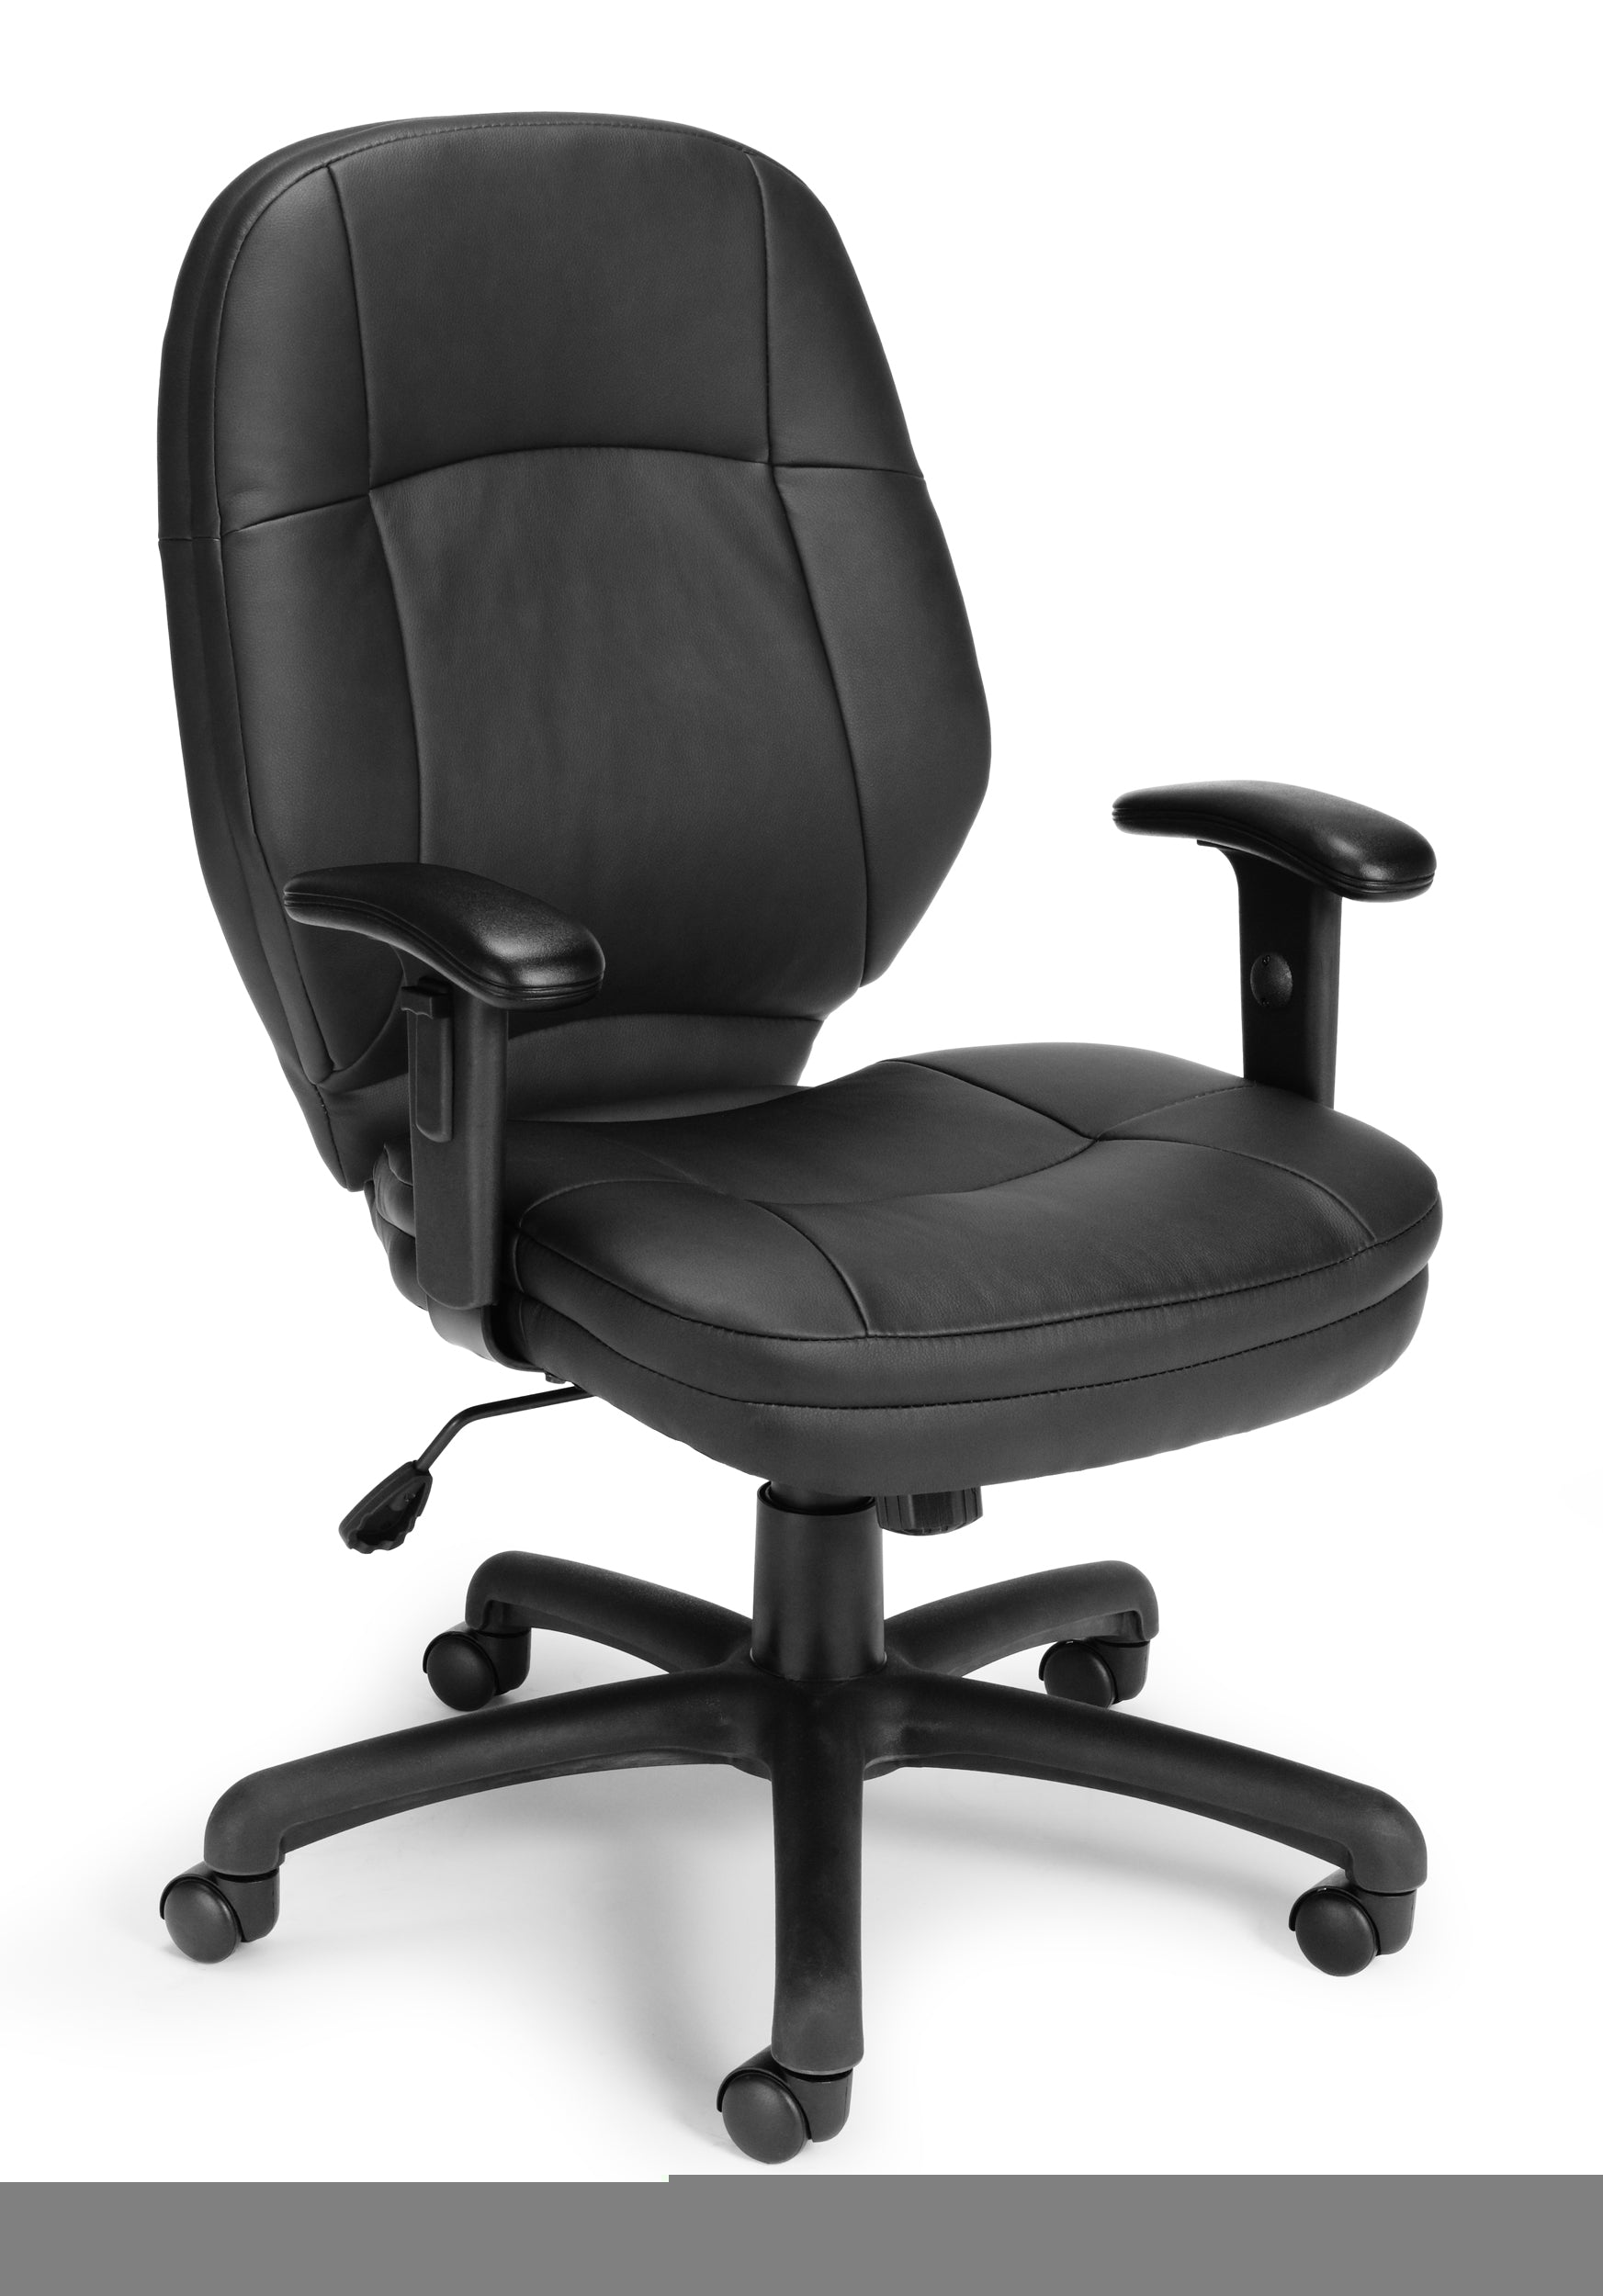 Stimulus Series Ergonomic Leather Task Chair with Adjustable Arms